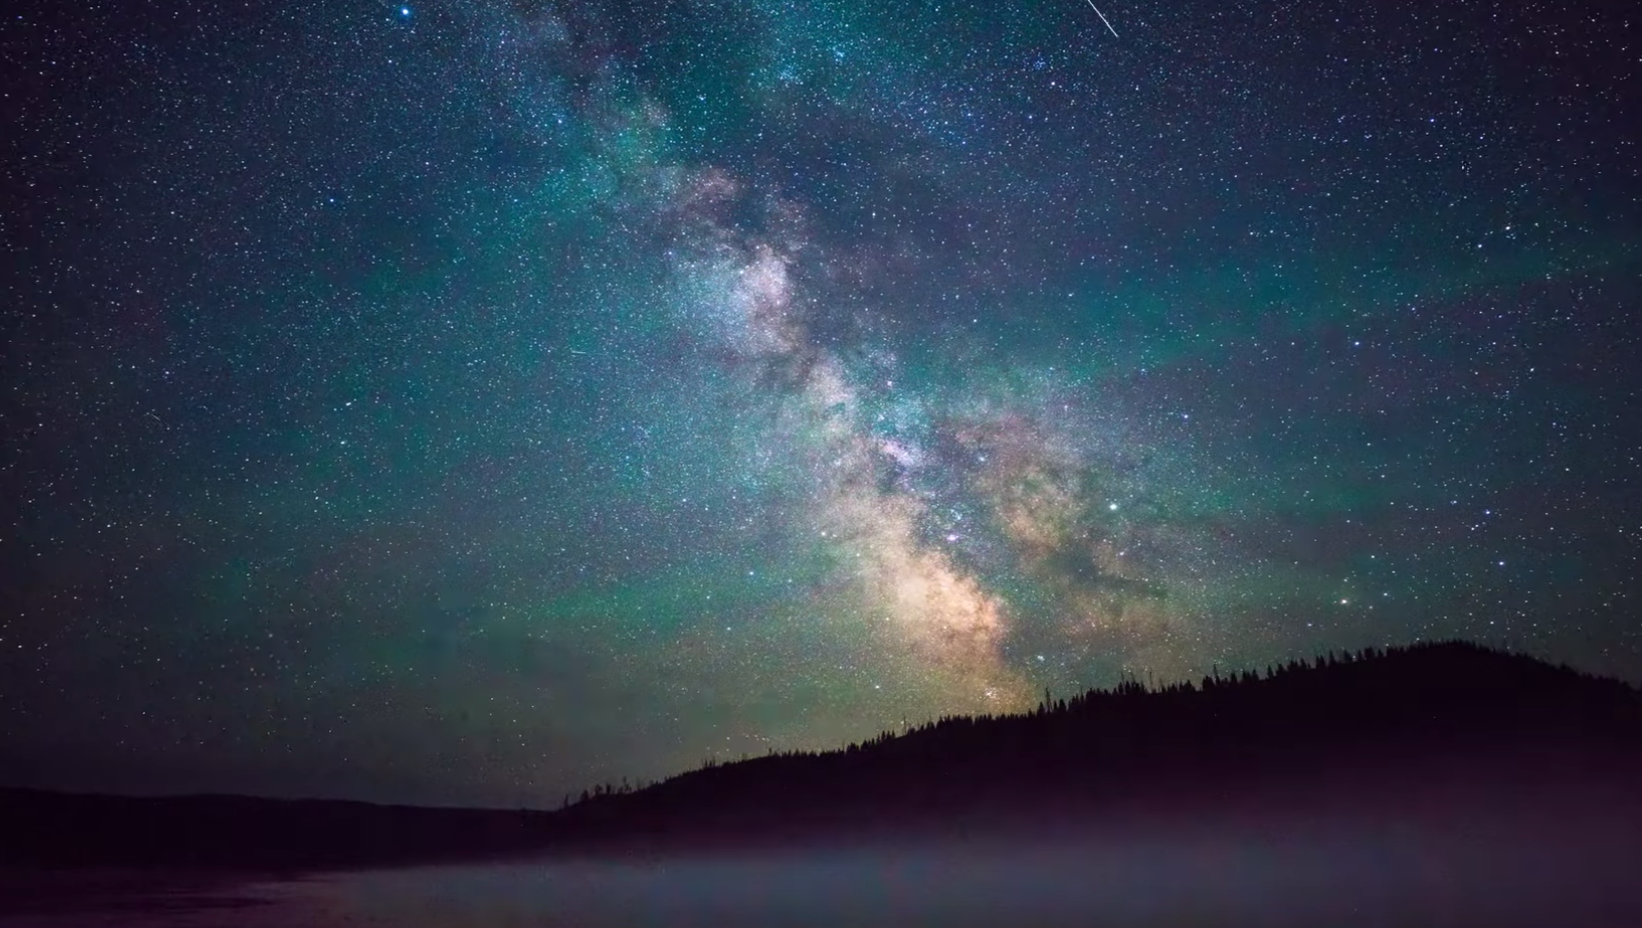 Time-Lapse Video Shows What The Night Sky Looks Like With Drastically Different Levels Of Light Pollution